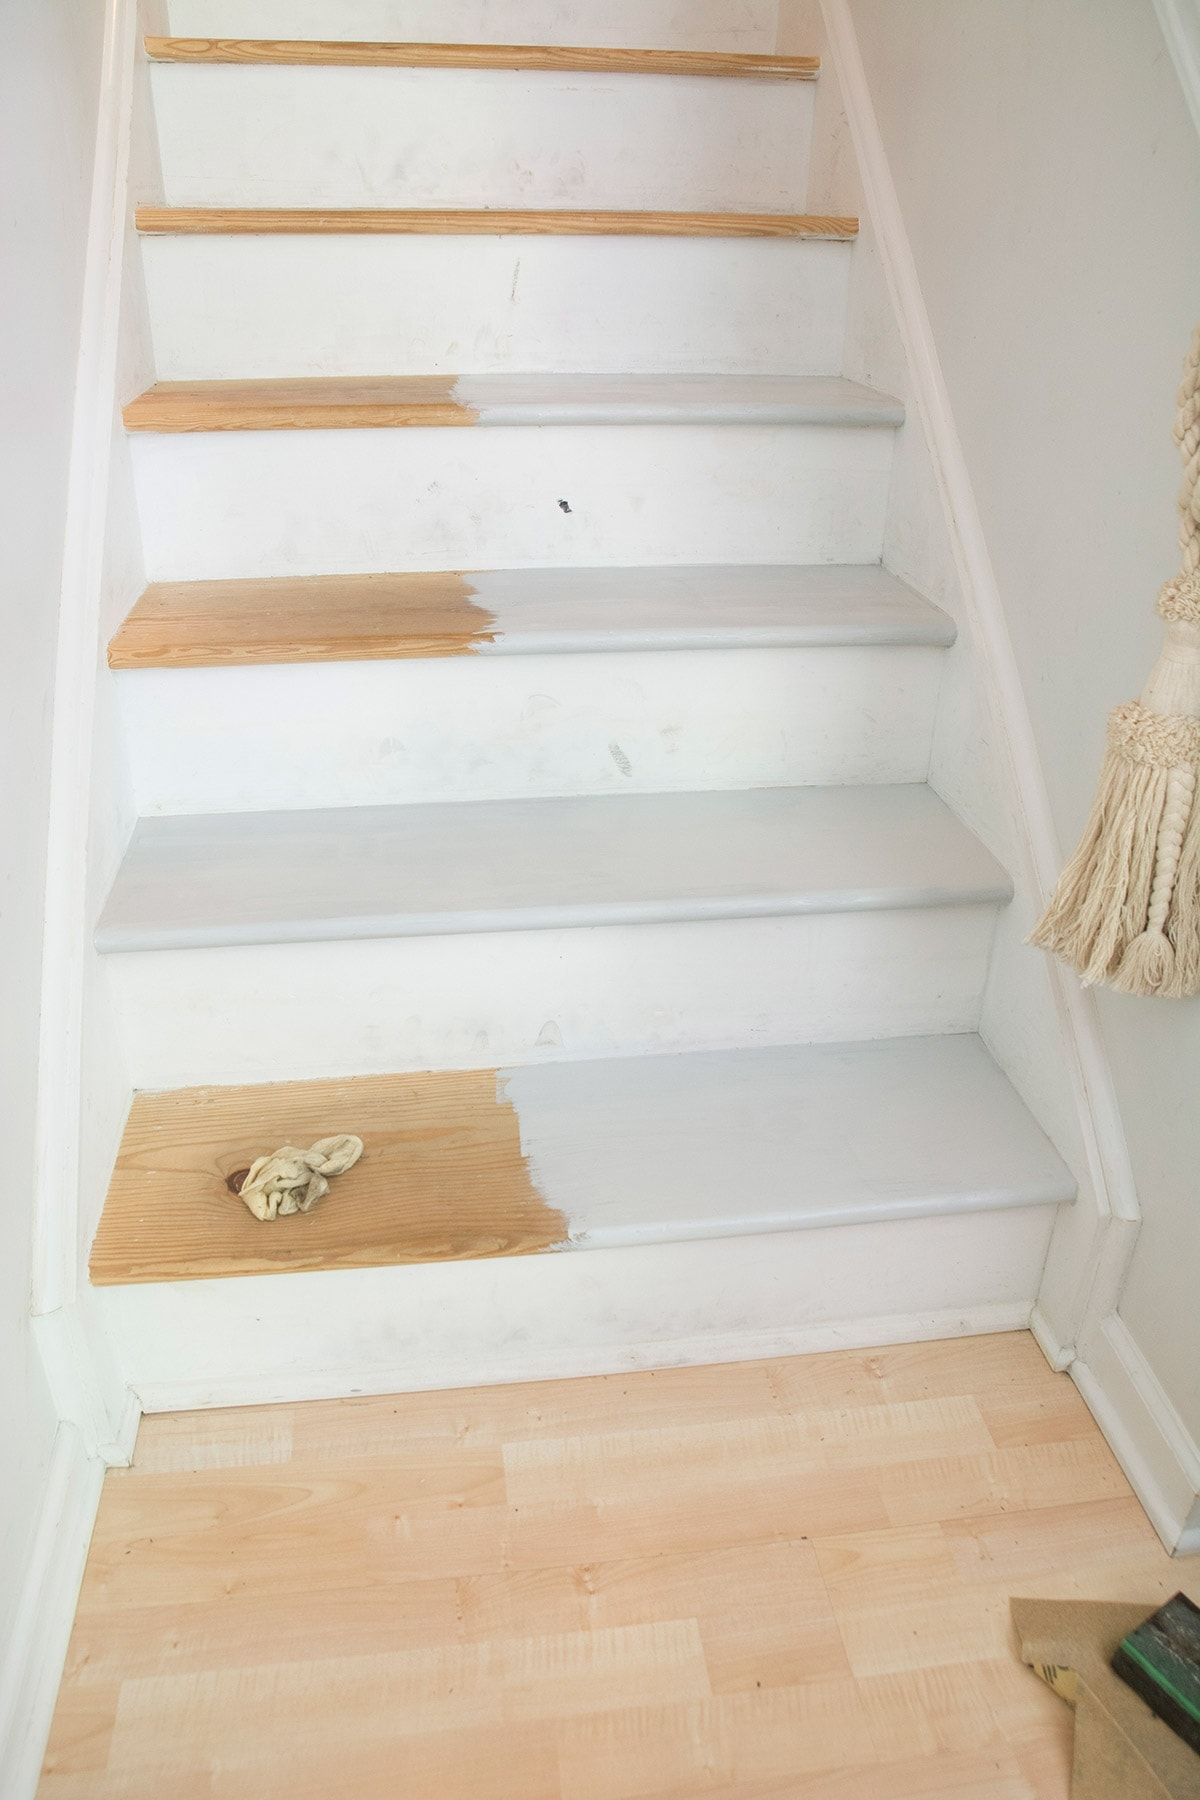 How To Refinish Stairs That Were Carpeted Cuckoo4Design | Painted And Stained Stairs | Easy Diy | Two Tone | Espresso Stained | Pinterest | Home